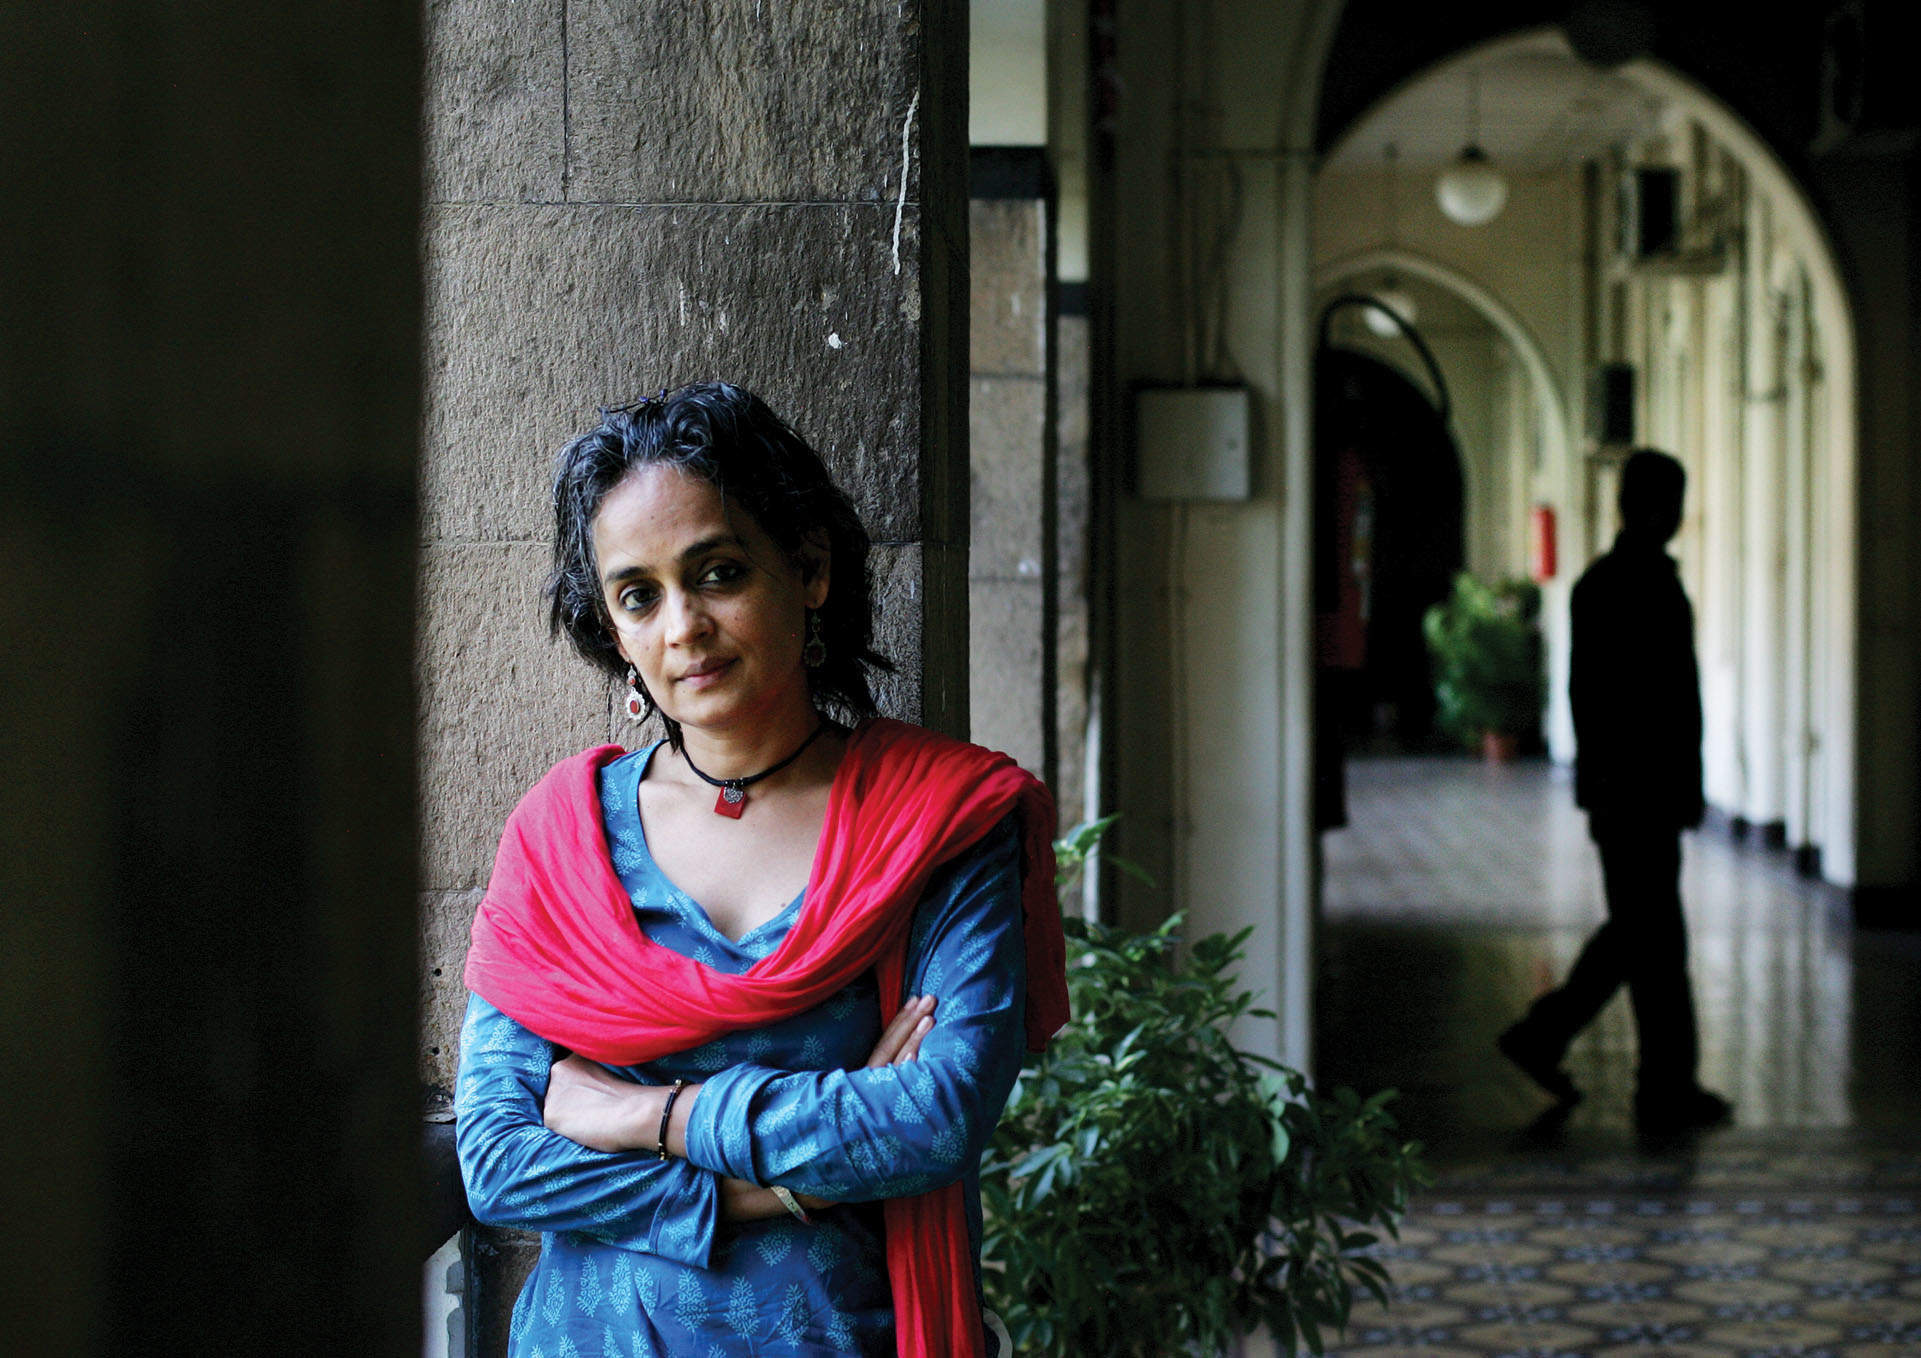 Arundhati Roy returns to fiction after 20 years - but can she move on from The God of Small Things?